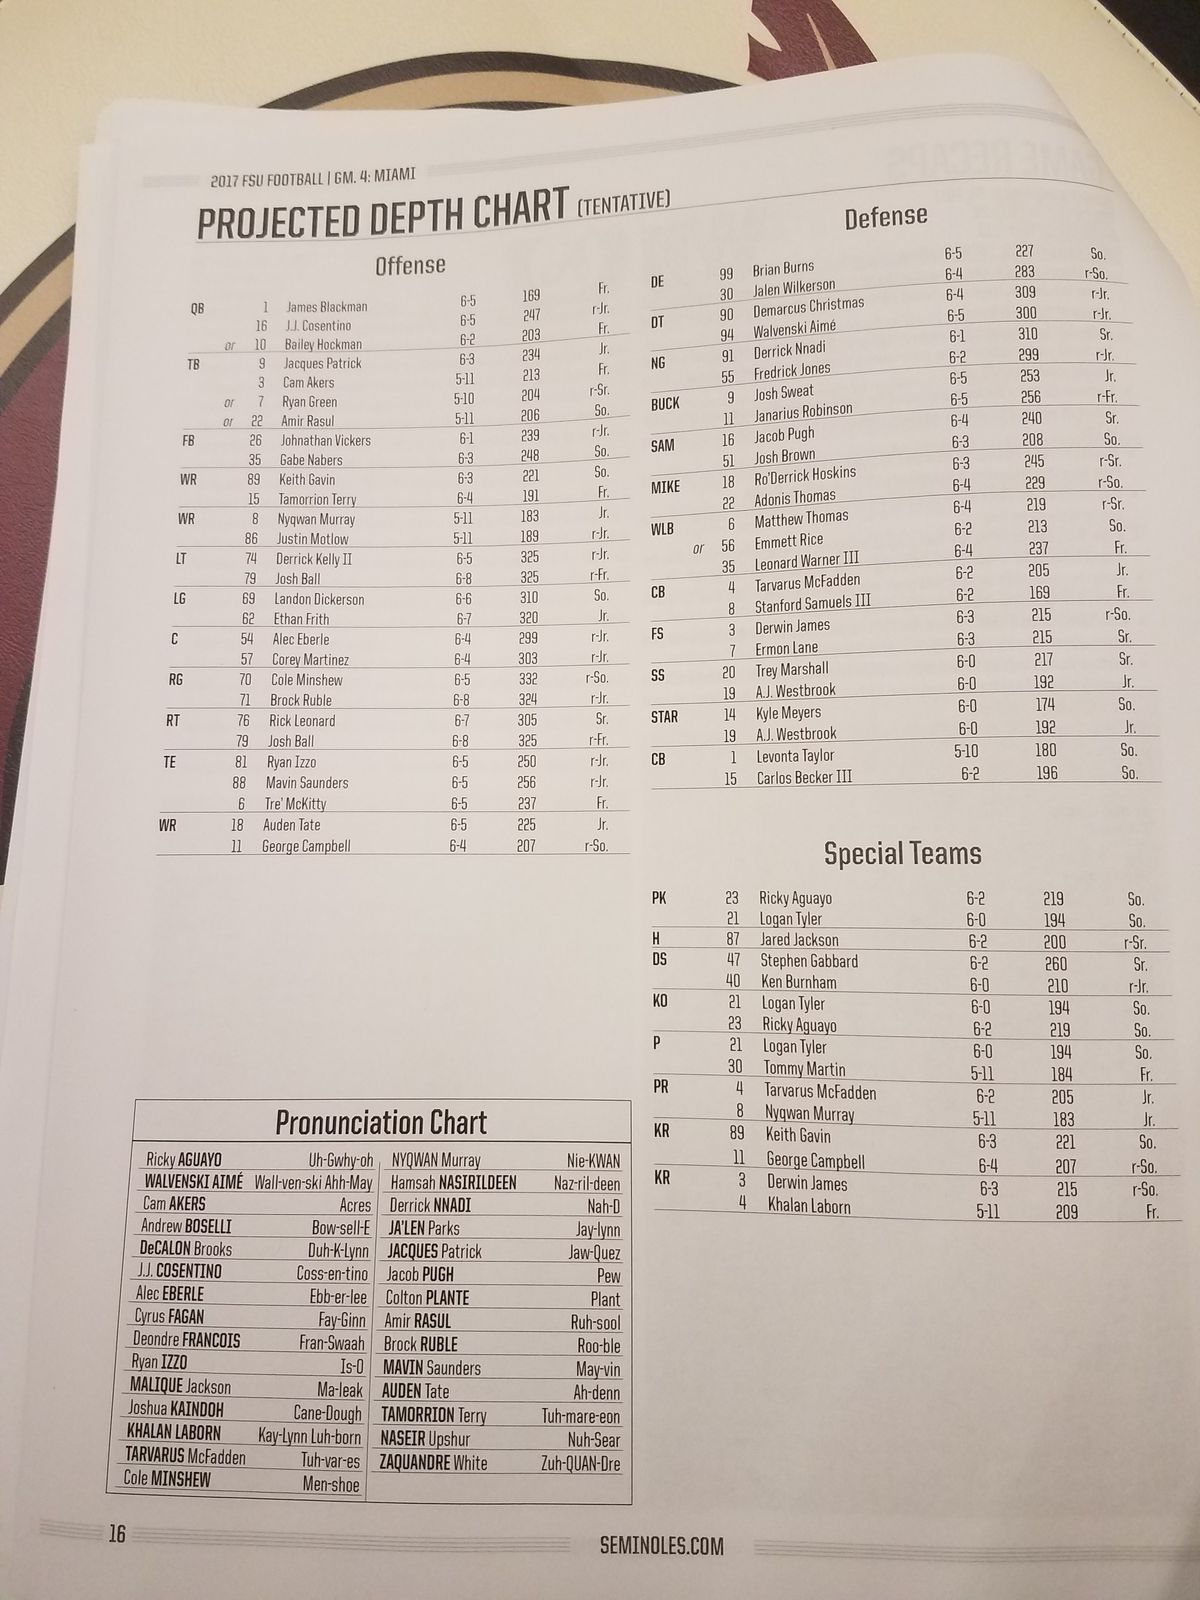 Here S The Latest Seminole Depth Chart Straight From Fsu Athletics For Your Consideration